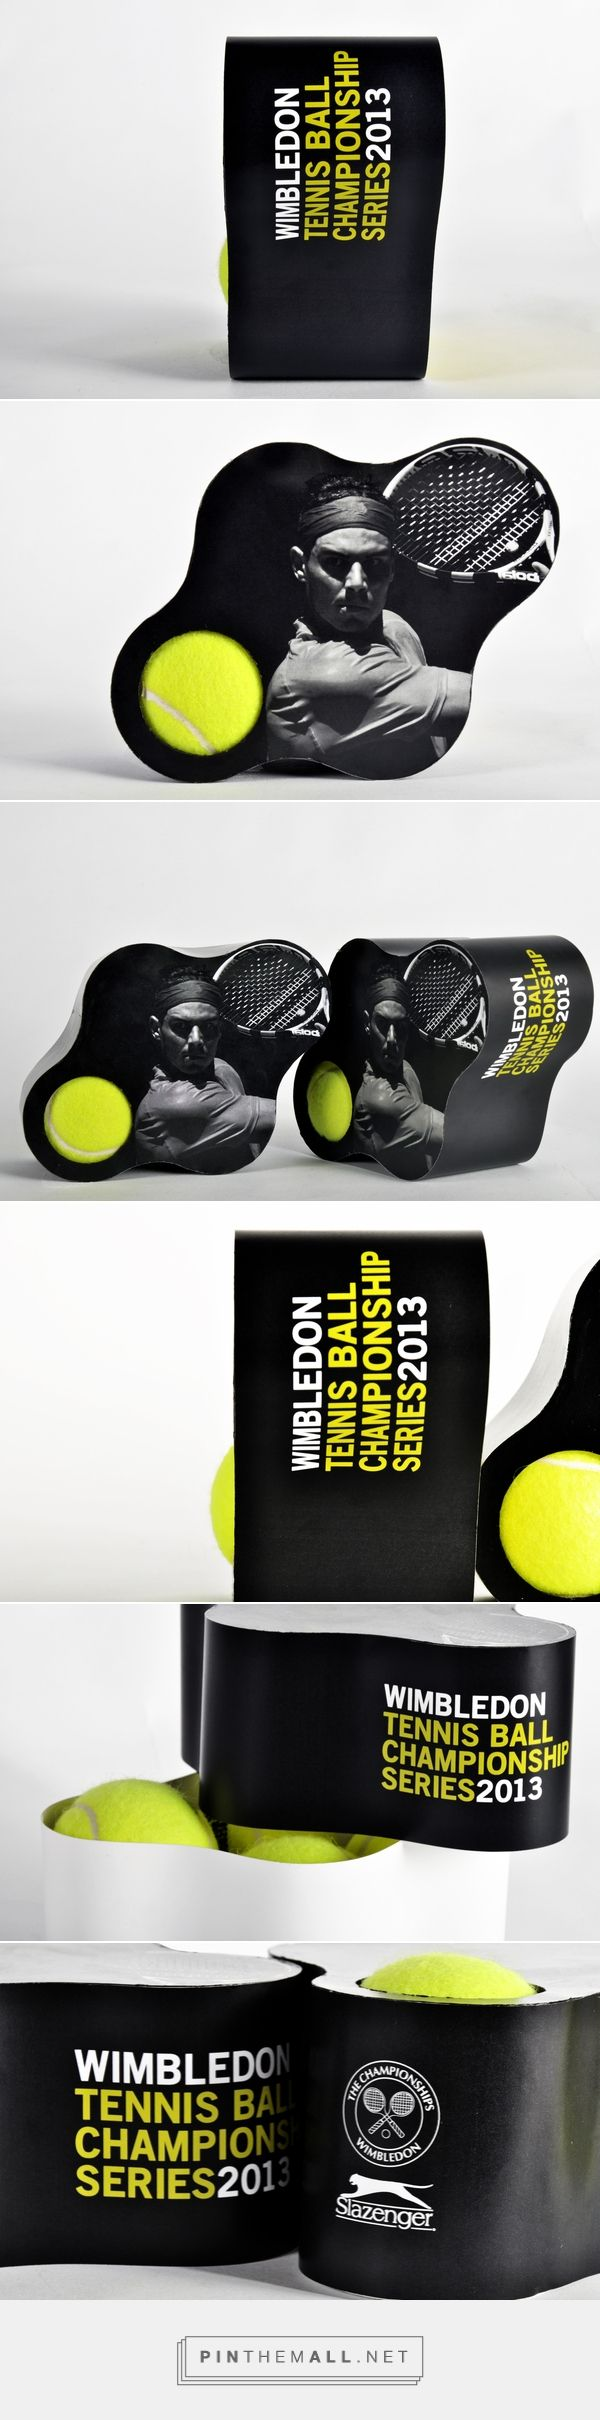 Tennis Ball for Wimbledon curated by Packaging Diva PD. Great tennis ball packaging for World Tennis Day.